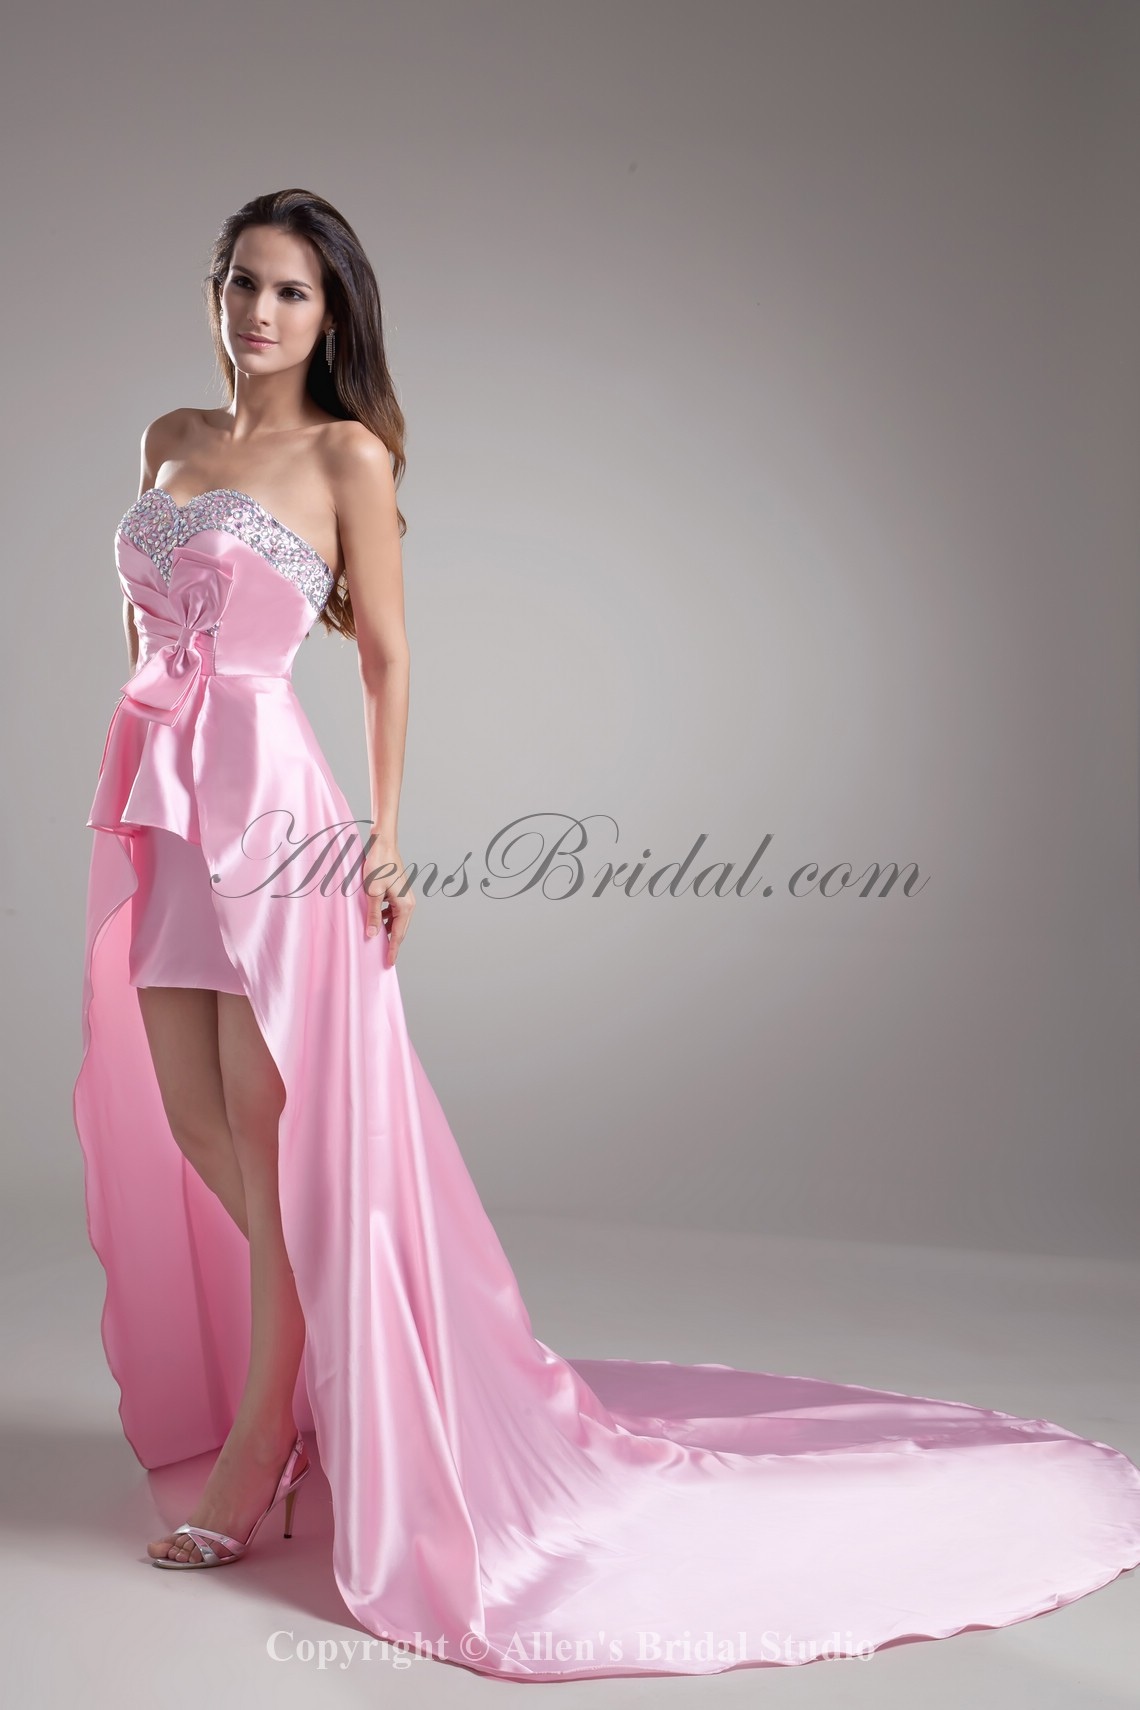 /705-5648/satin-sweetheart-neckline-sweep-train-a-line-crystals-prom-dress.jpg